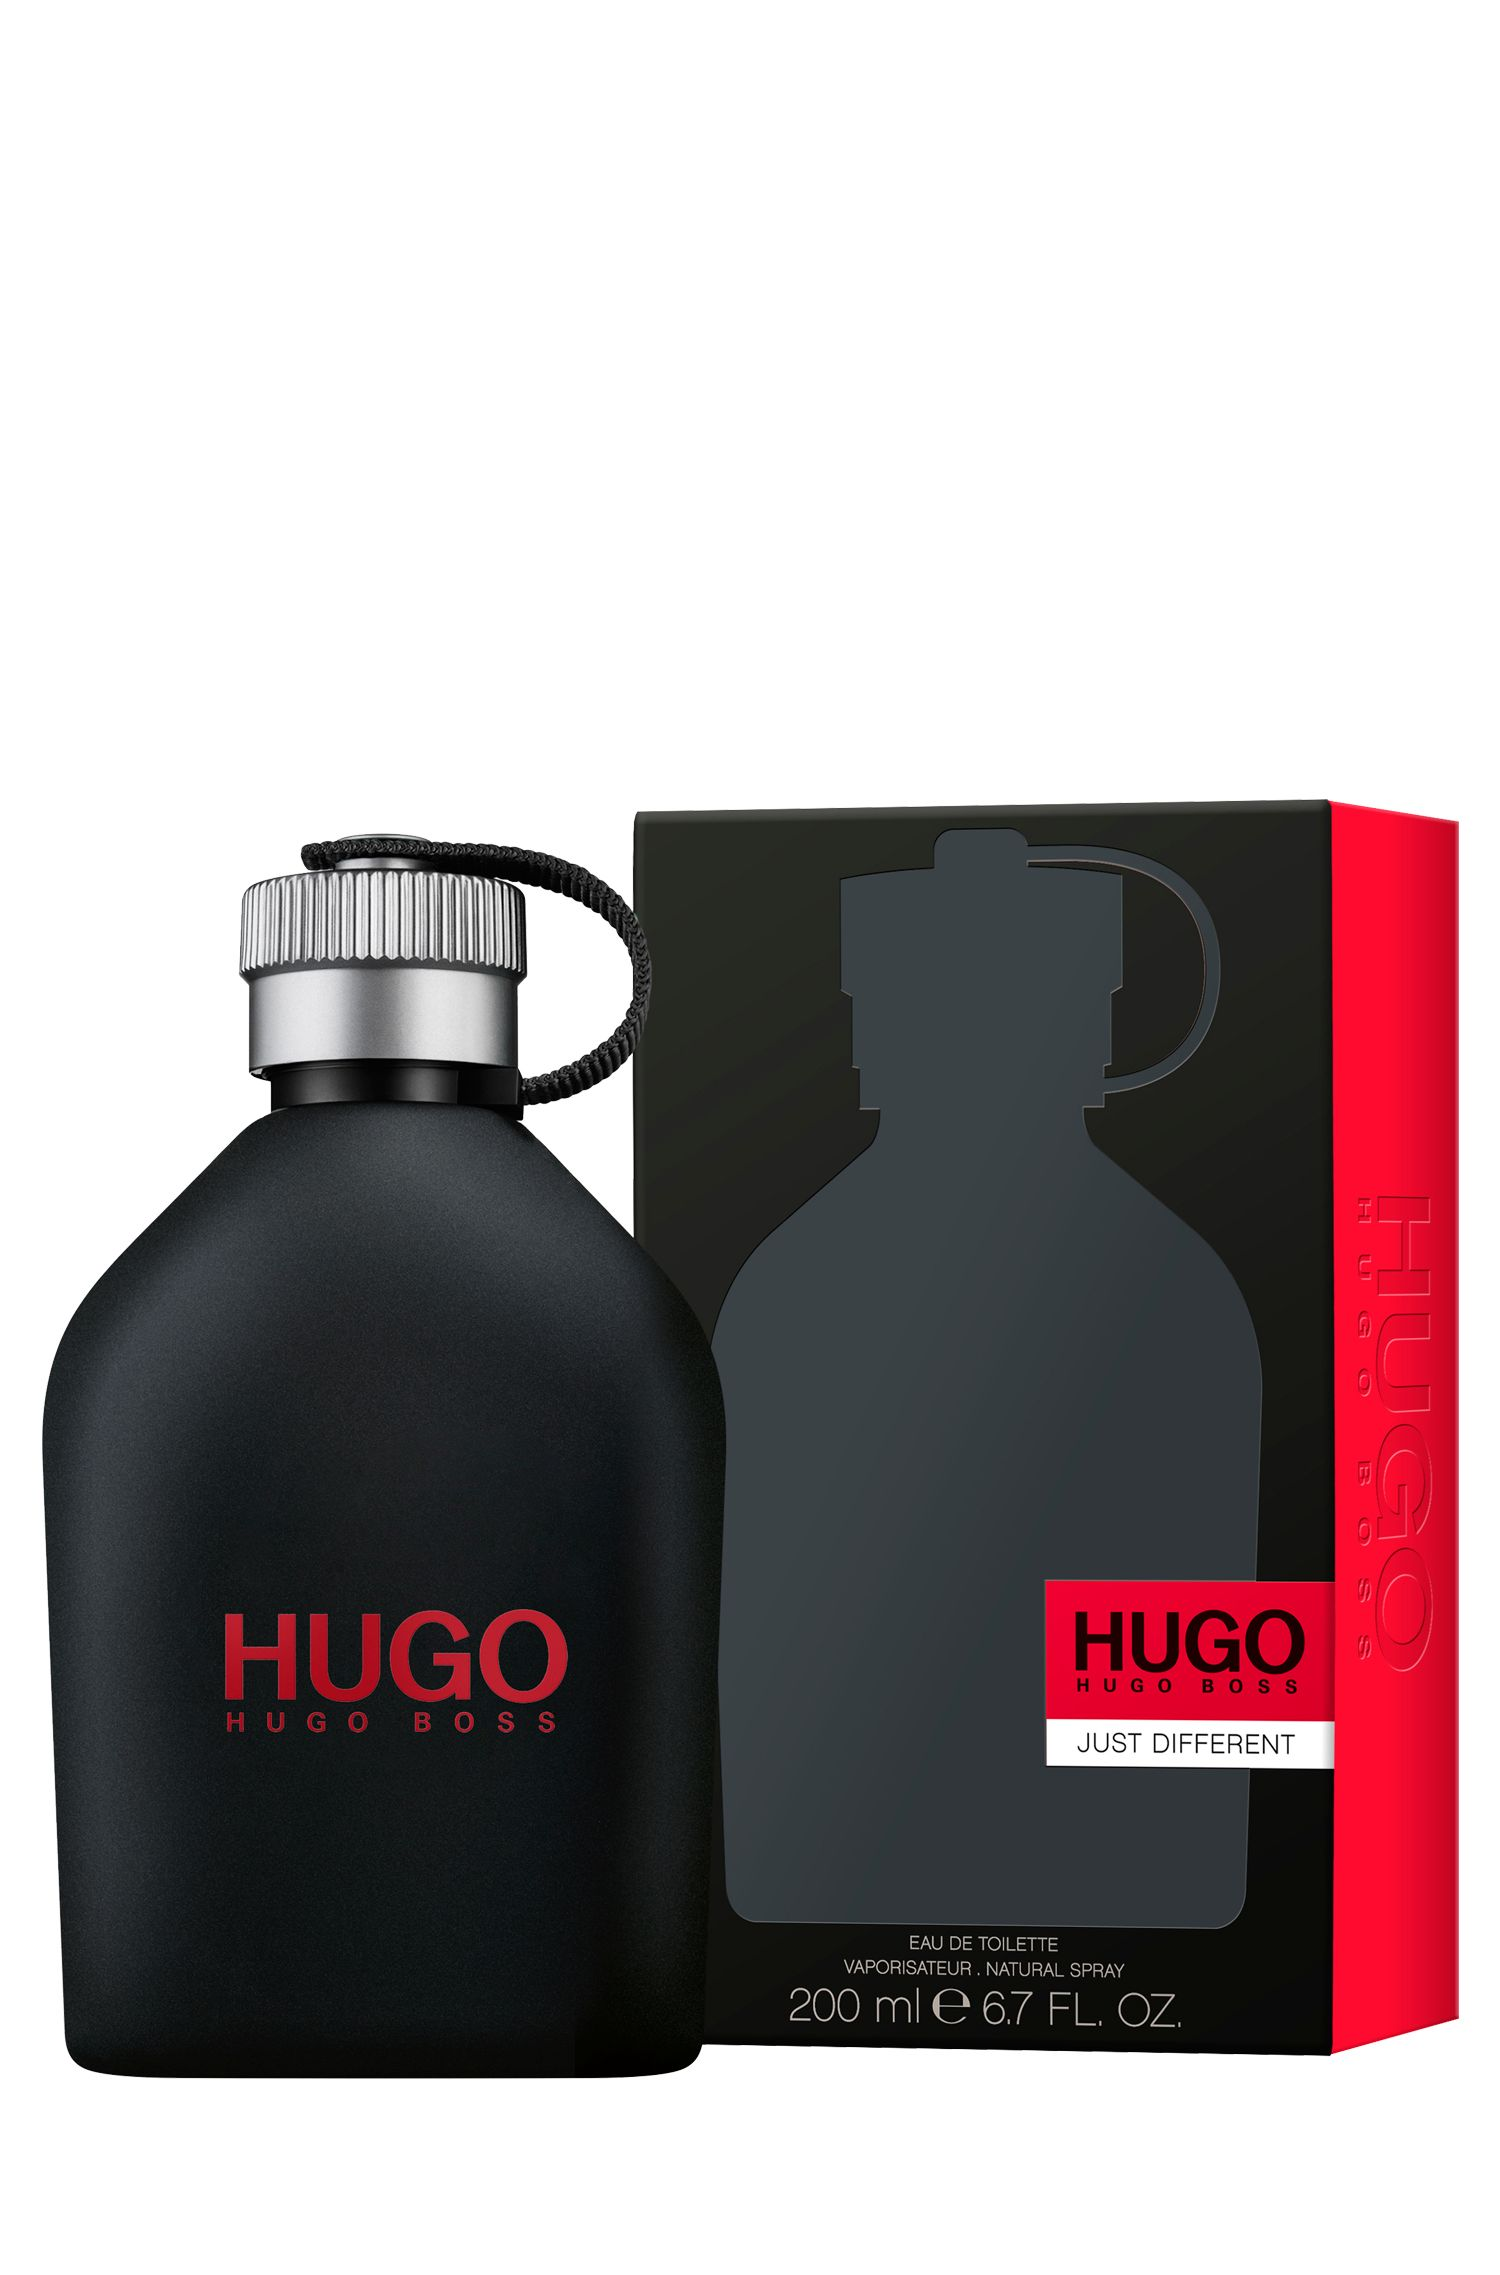 Eau de toilette HUGO Just Different de 200 ml